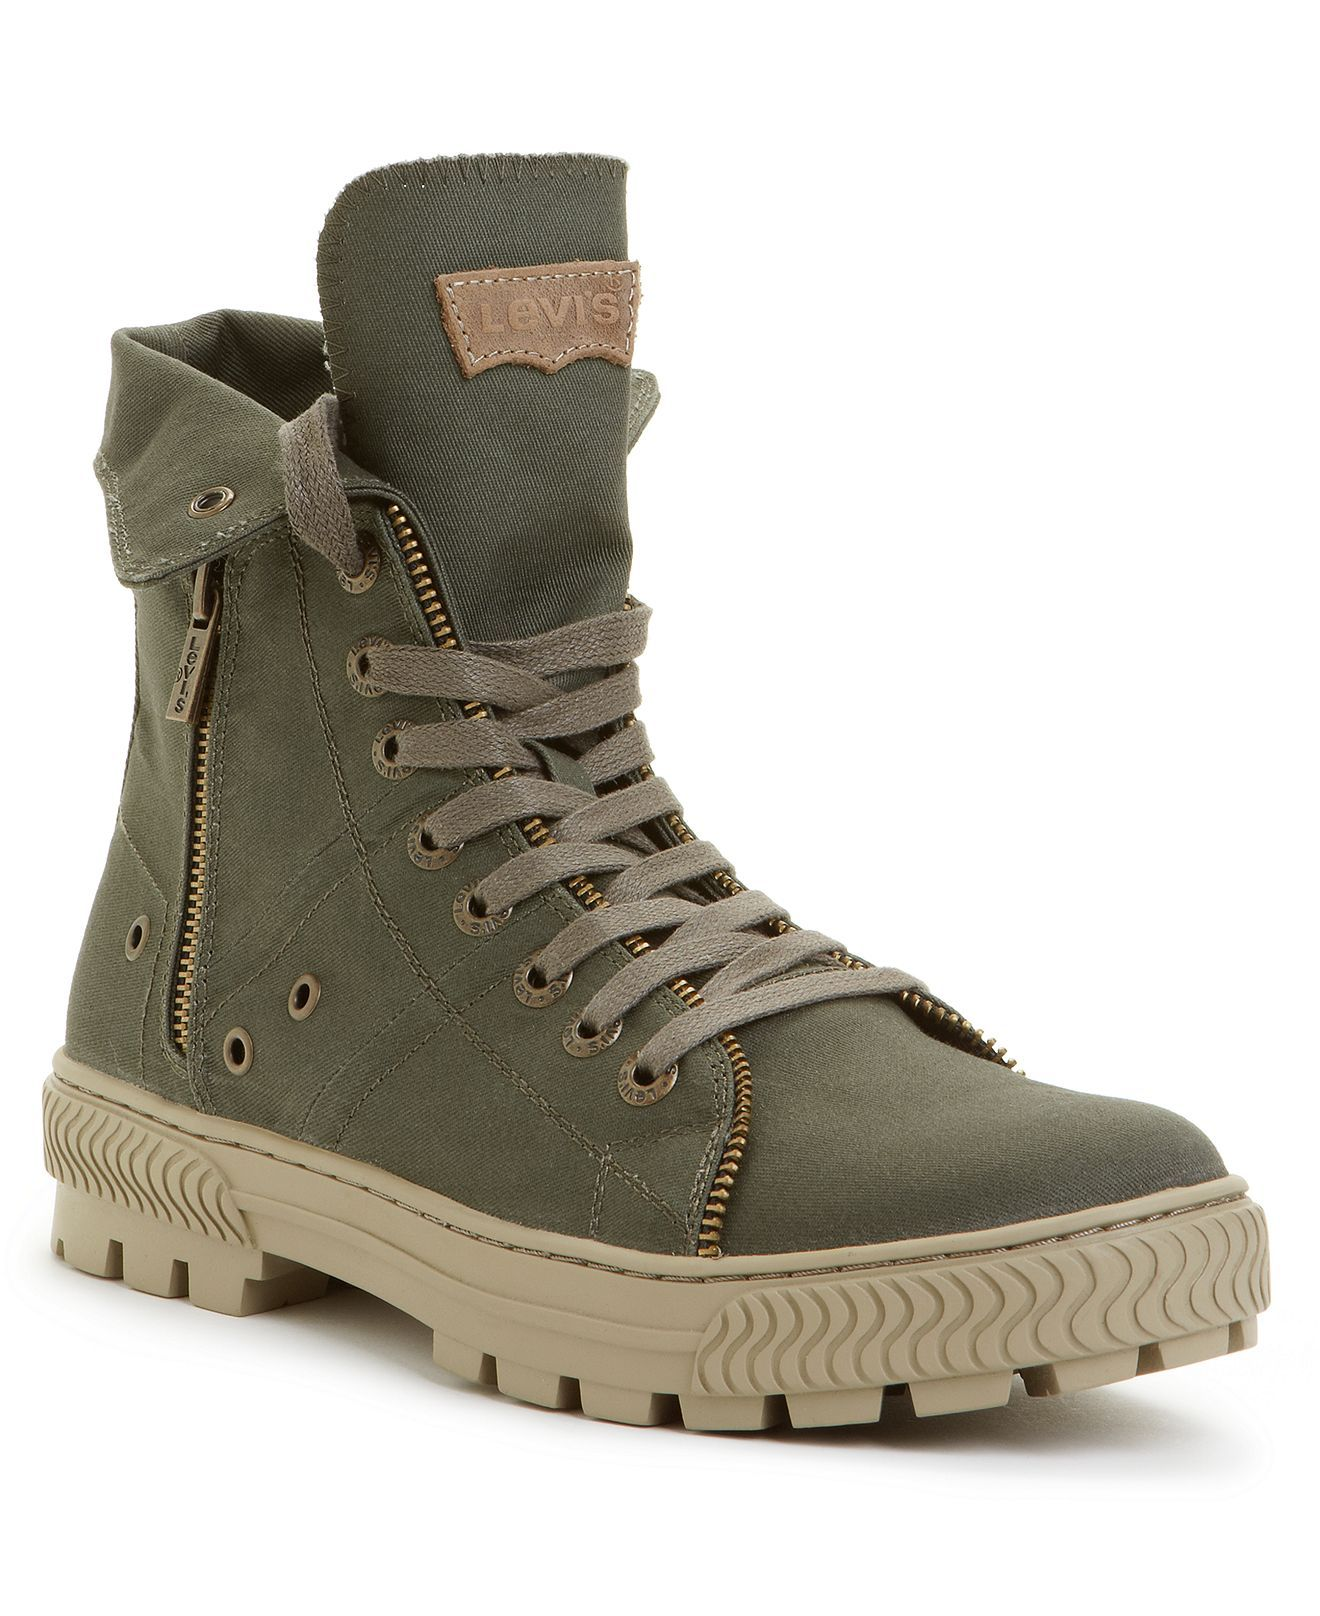 uk availability a0636 ee433 Levi s Shoes, Canvas Sahara Hi Top Boots - Mens All Men s Shoes - Macy s    49.99